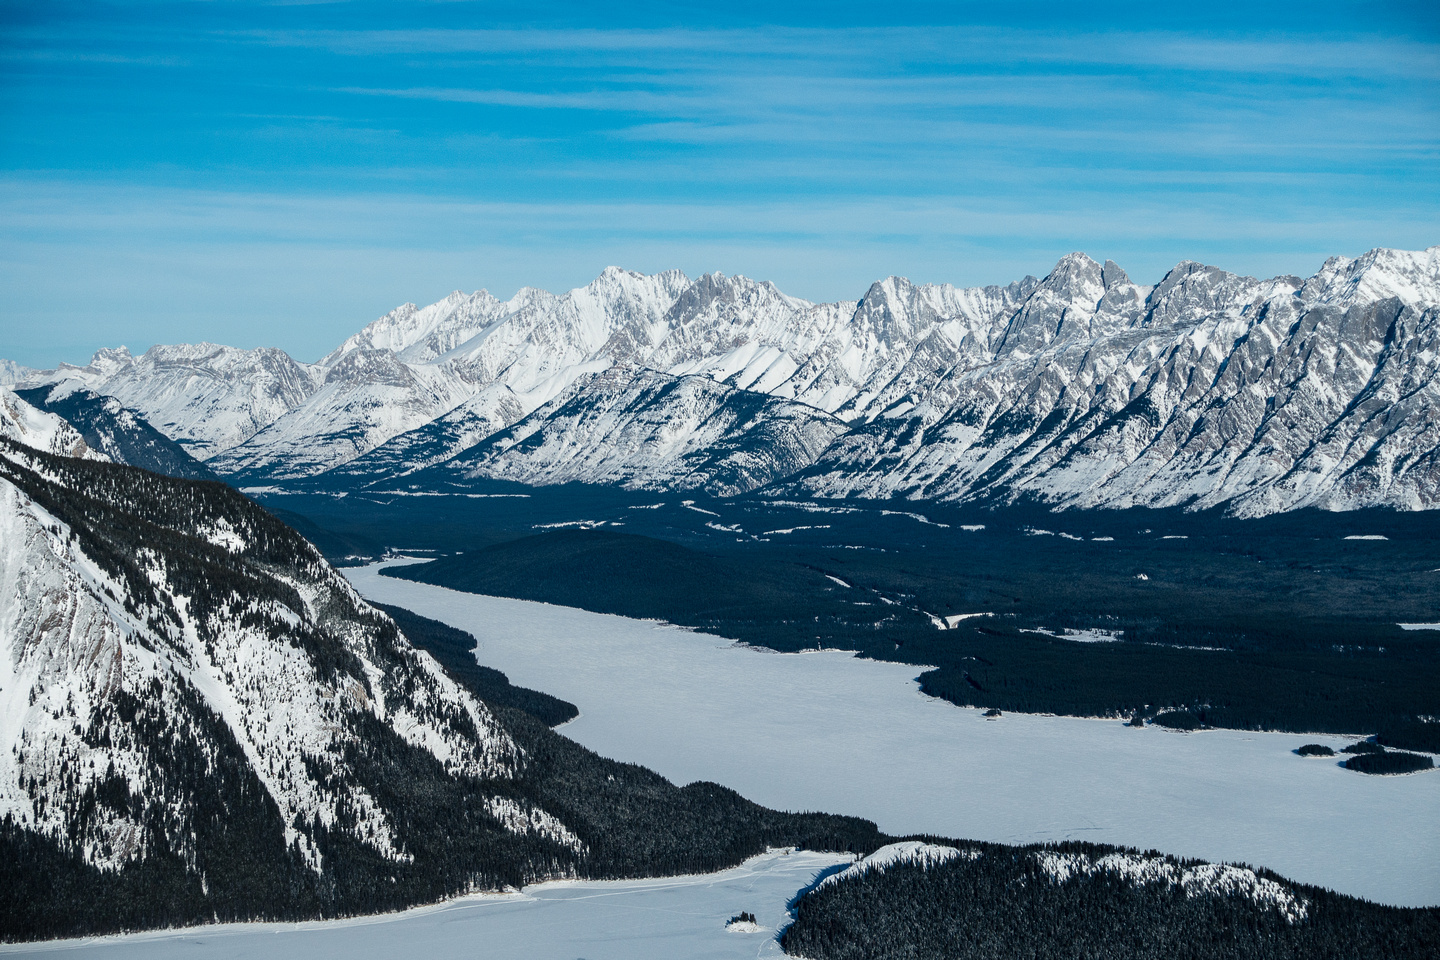 Looking over Lower Kananaskis Lake towards the Opal Range including Packenham, Hood, Brock, Blane and others.